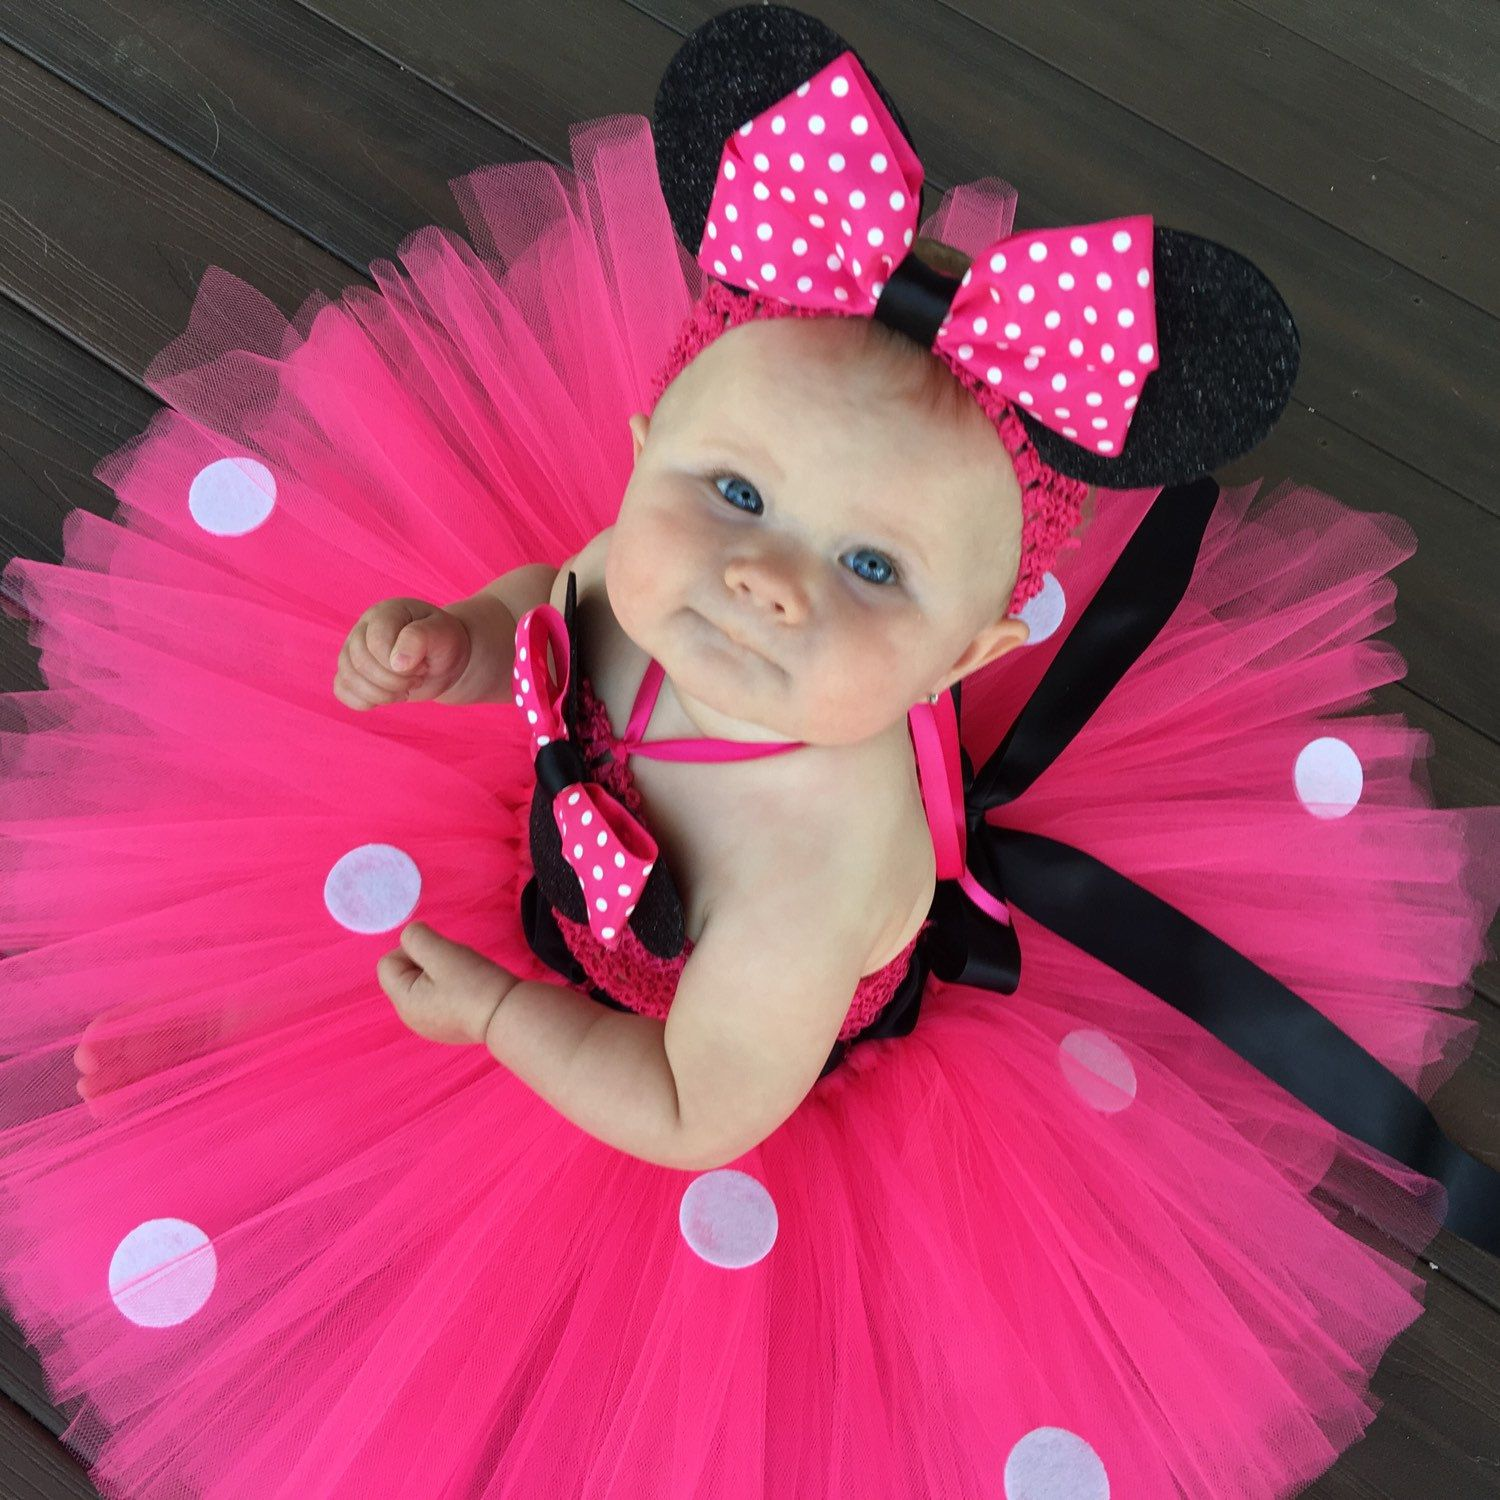 a3e81abc8 Hot Pink Minnie Mouse inspired costume dress with matching headband. This  set can be done in red